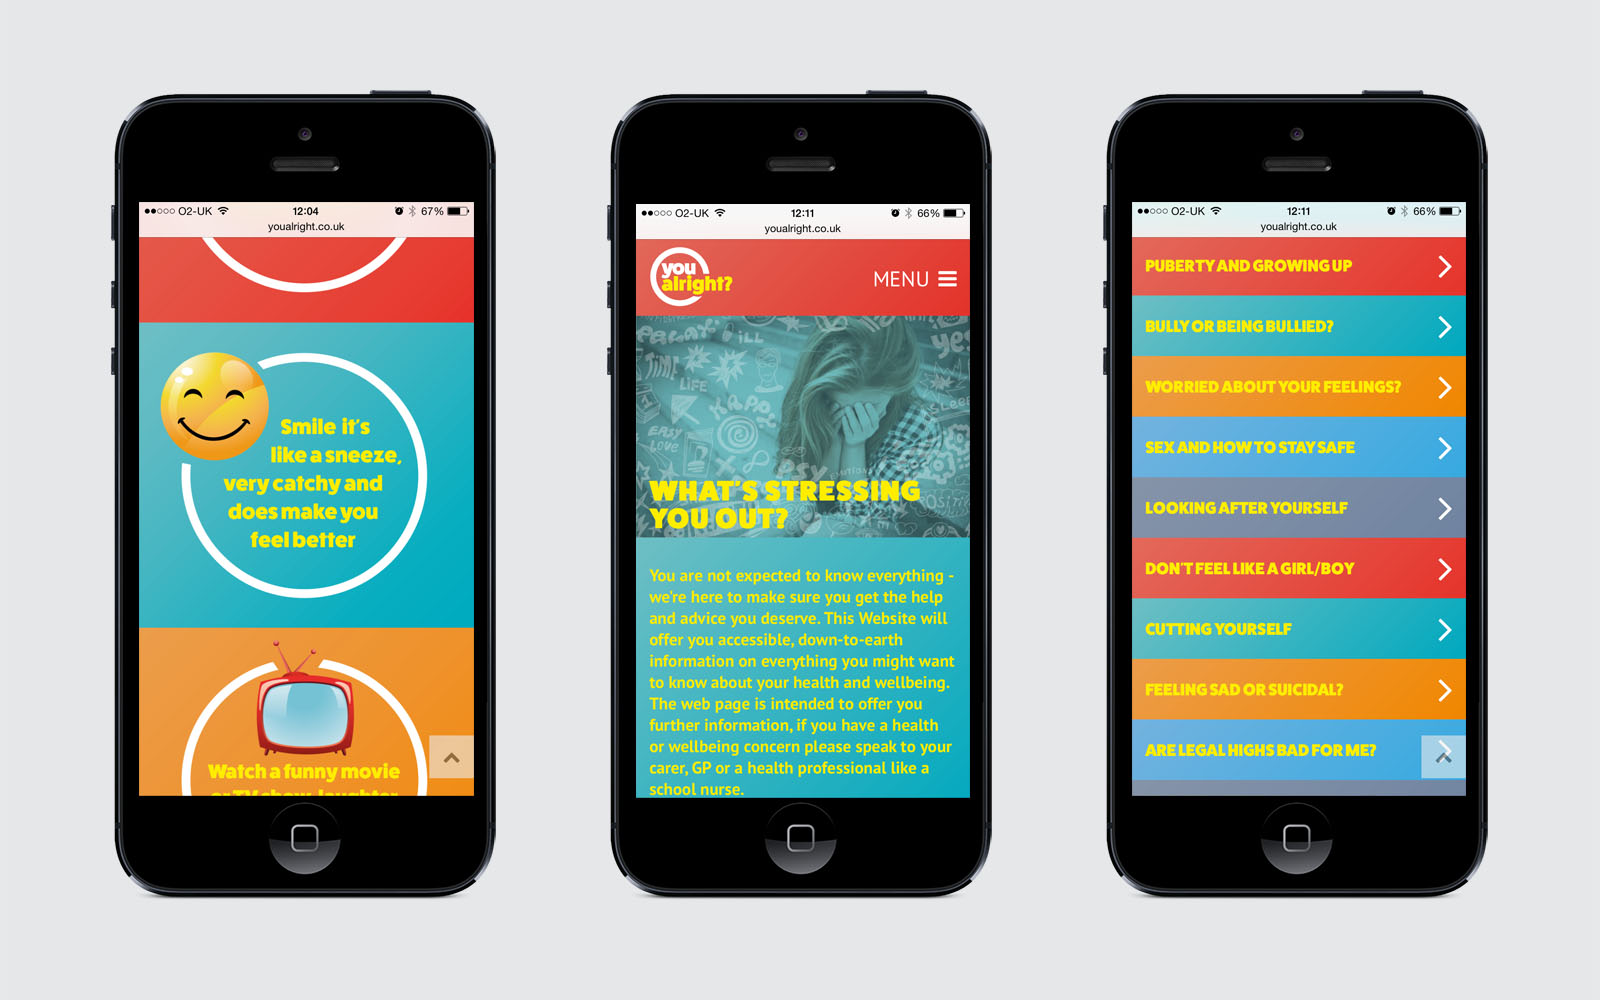 NHS Youalright website displayed on iPhone